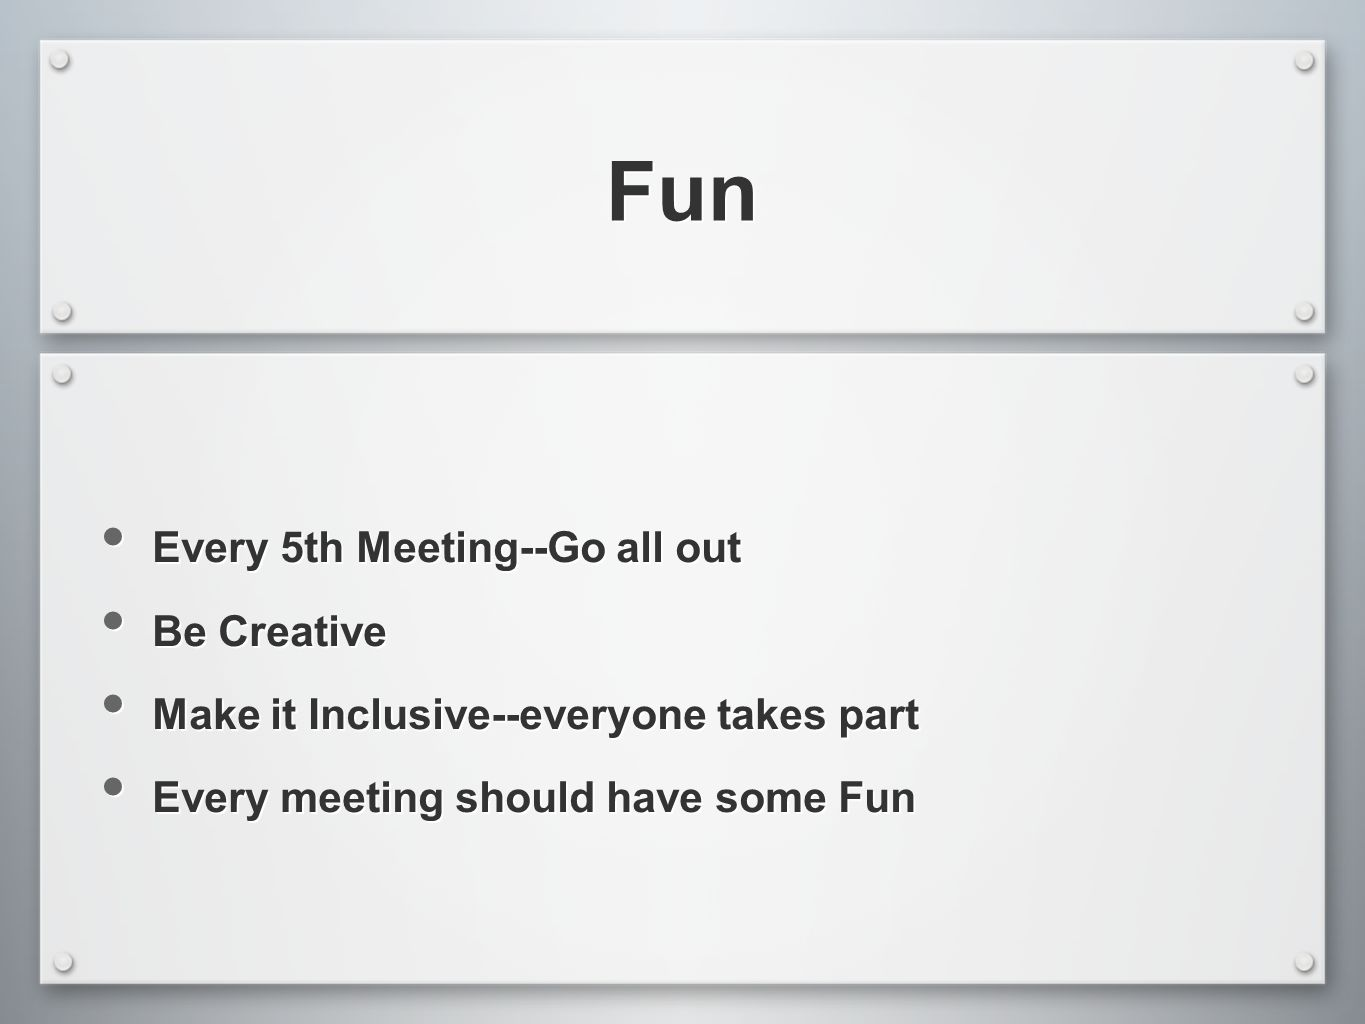 Fun Every 5th Meeting--Go all out Be Creative Make it Inclusive--everyone takes part Every meeting should have some Fun Every 5th Meeting--Go all out Be Creative Make it Inclusive--everyone takes part Every meeting should have some Fun